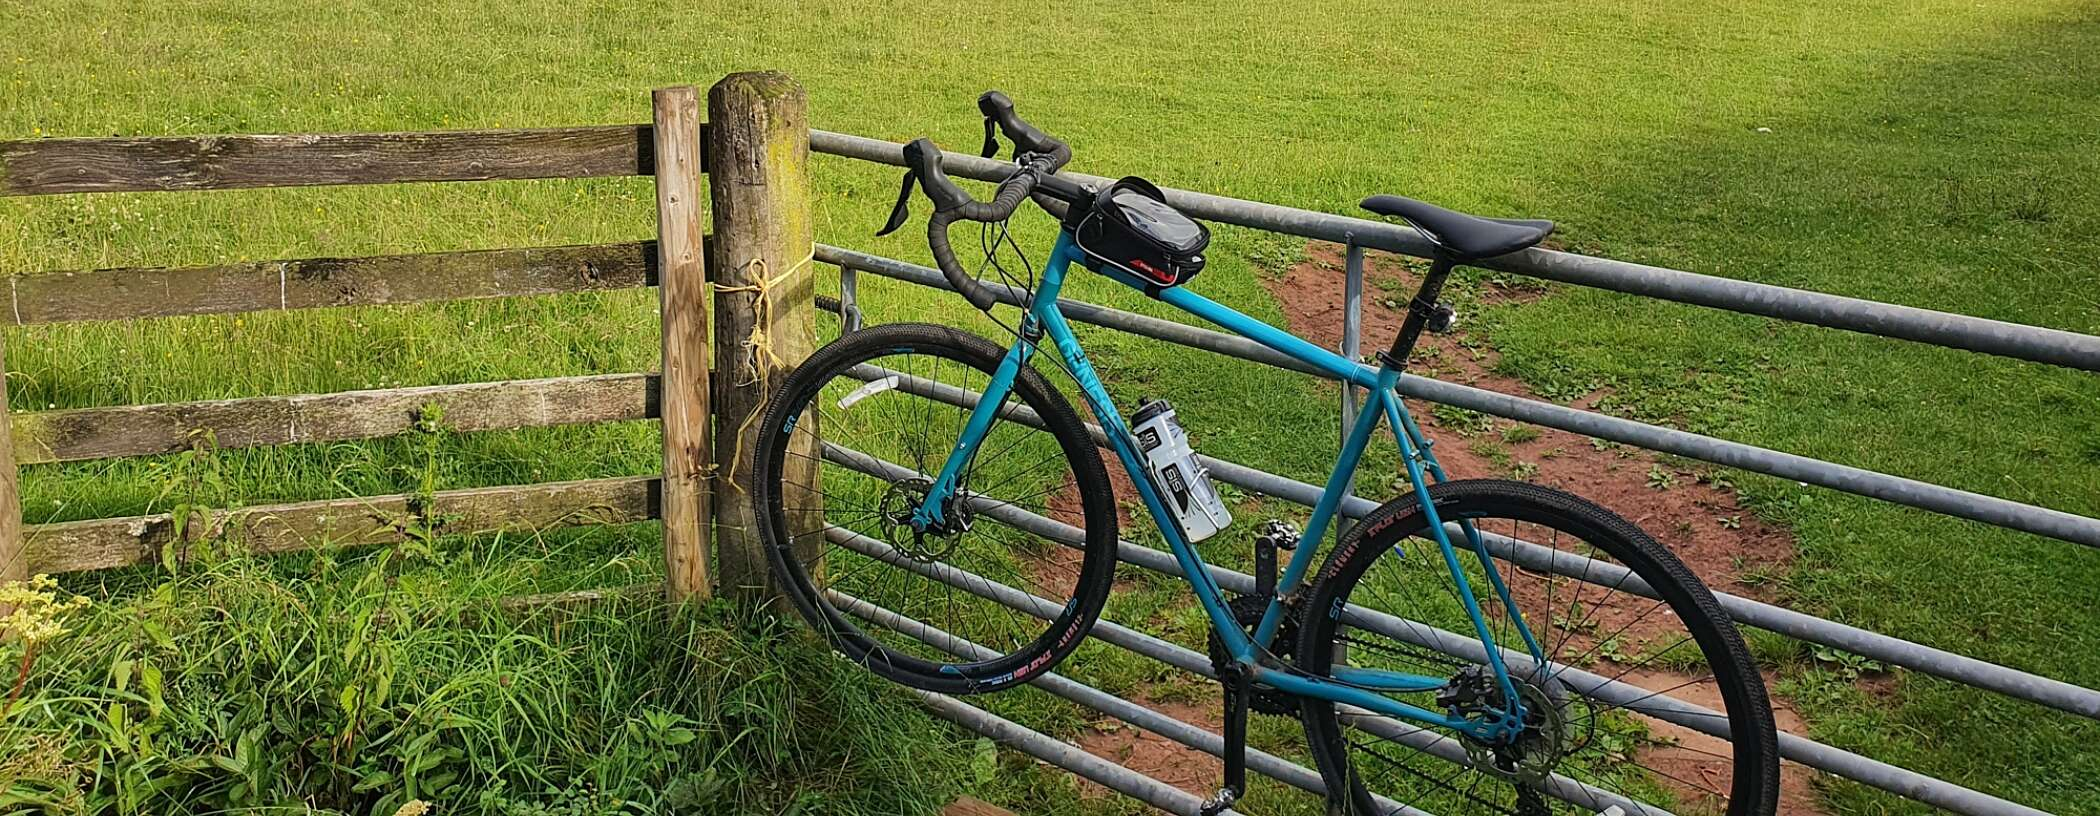 Bicycle leaning against a fence in the South Wales countryside